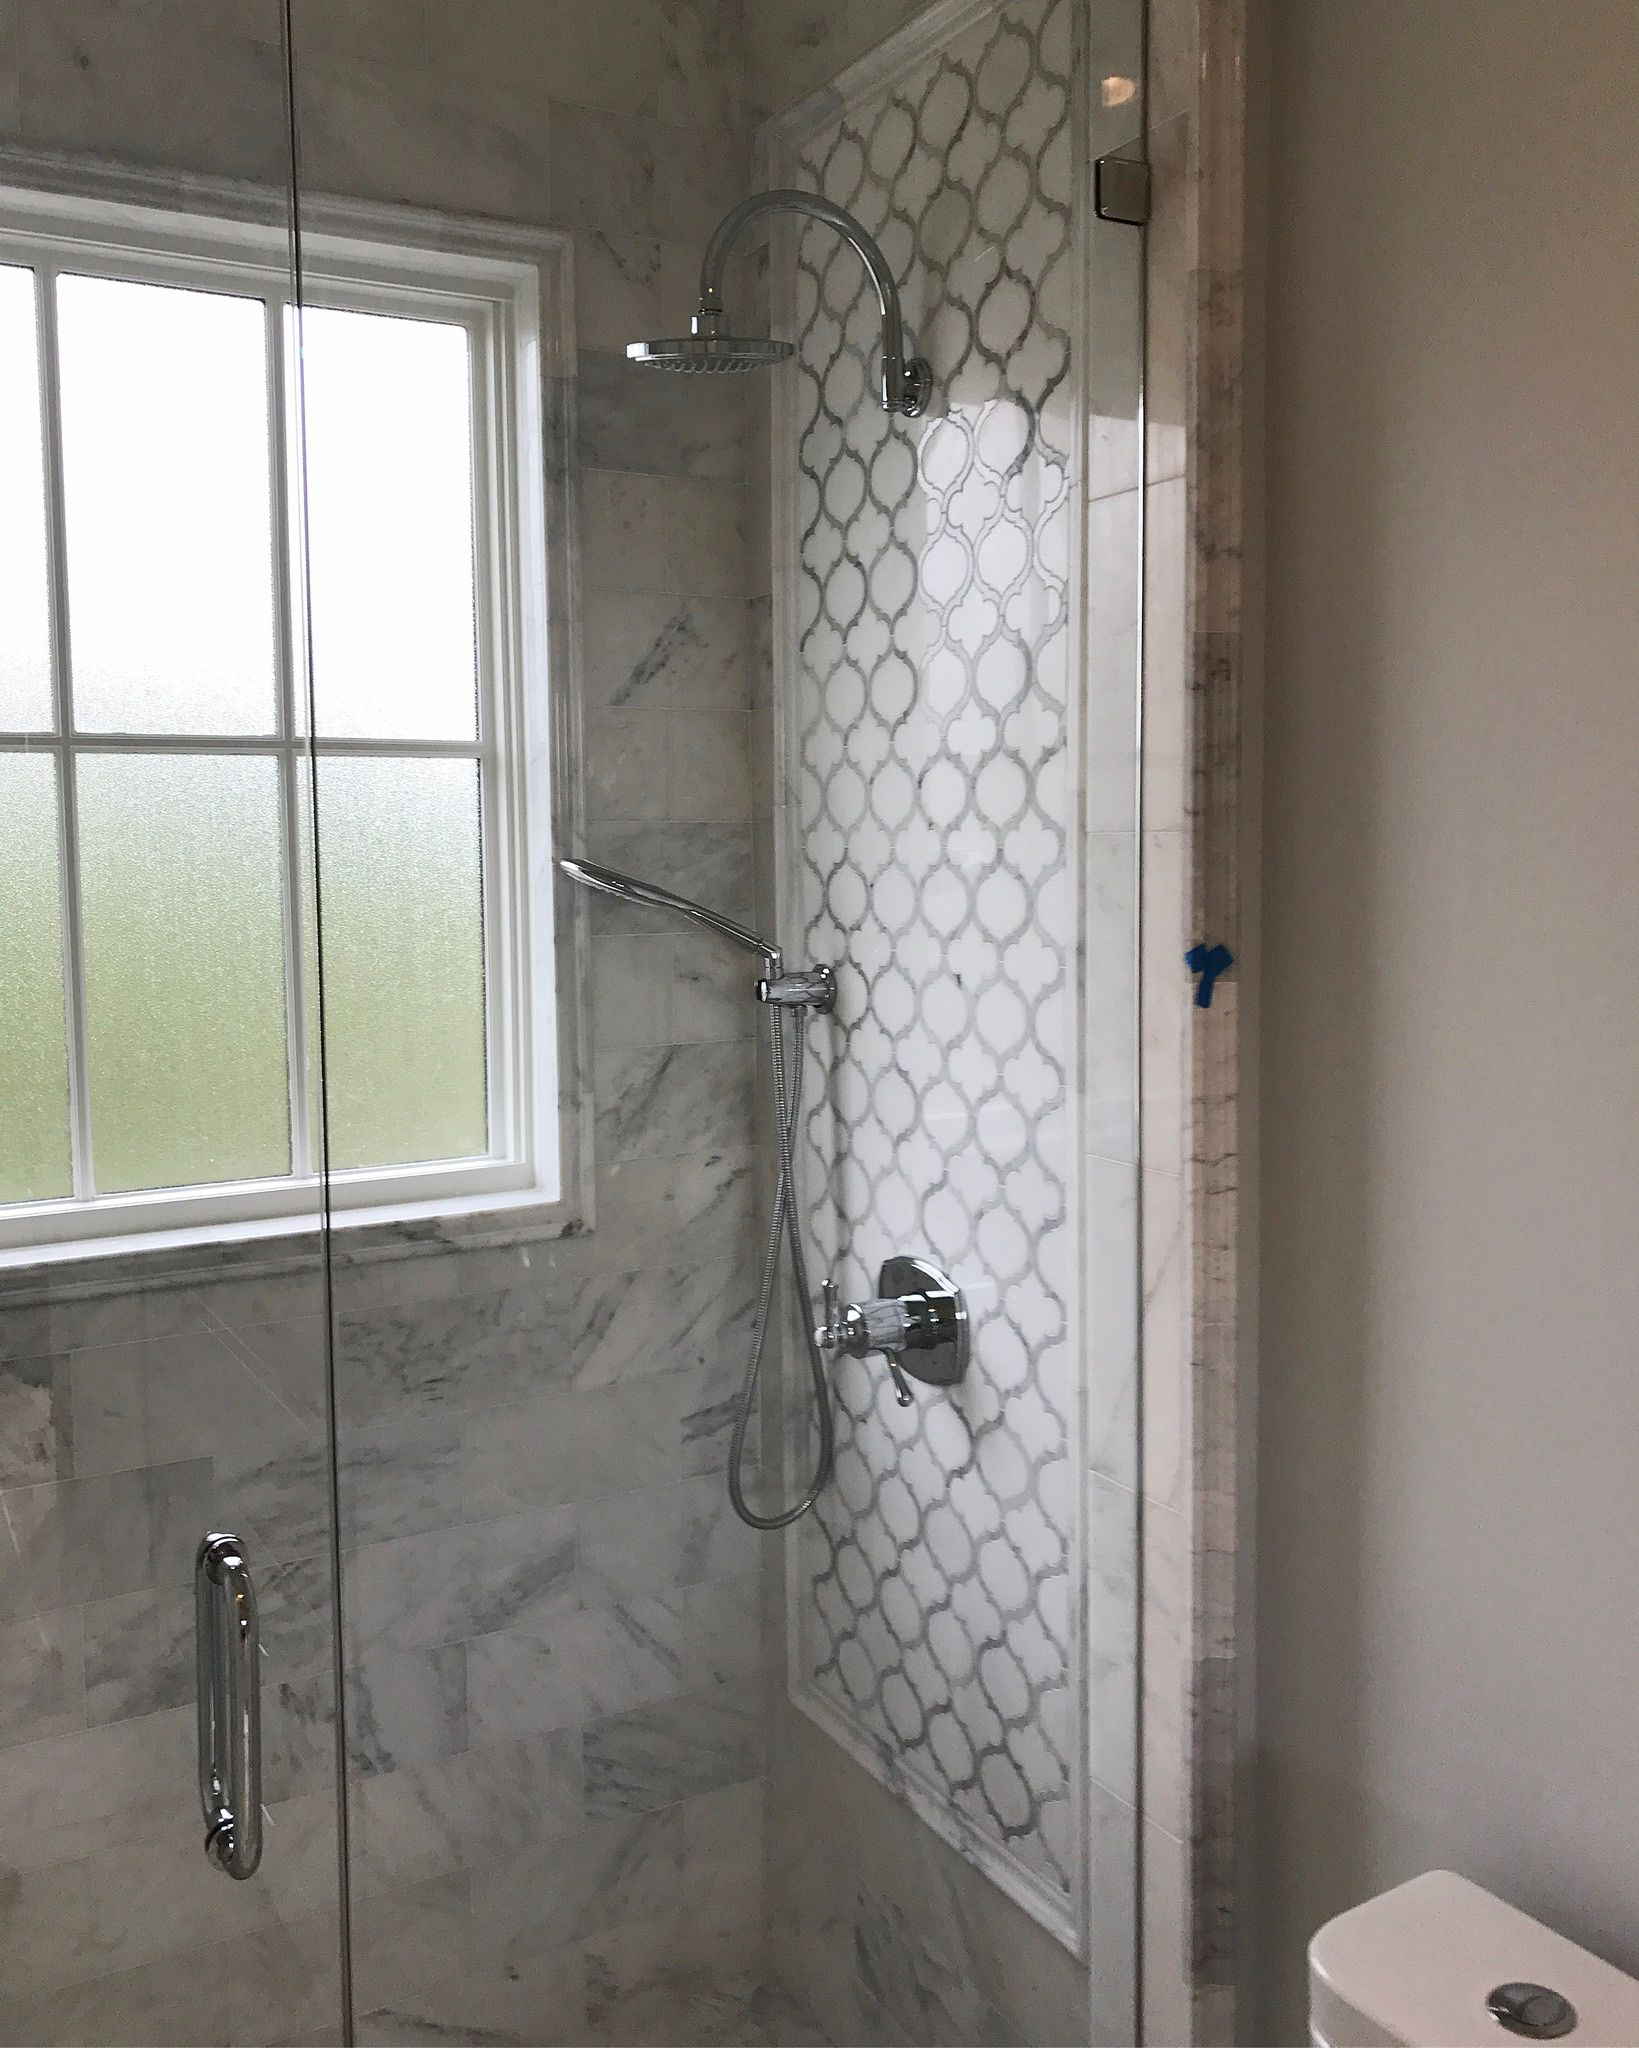 White Thassos And Bianco Carrara Marble Waterjet Mosaic Tile In Arabesque Marrakech Marble Shower Walls White Marble Bathrooms Arabesque Tile Bathroom